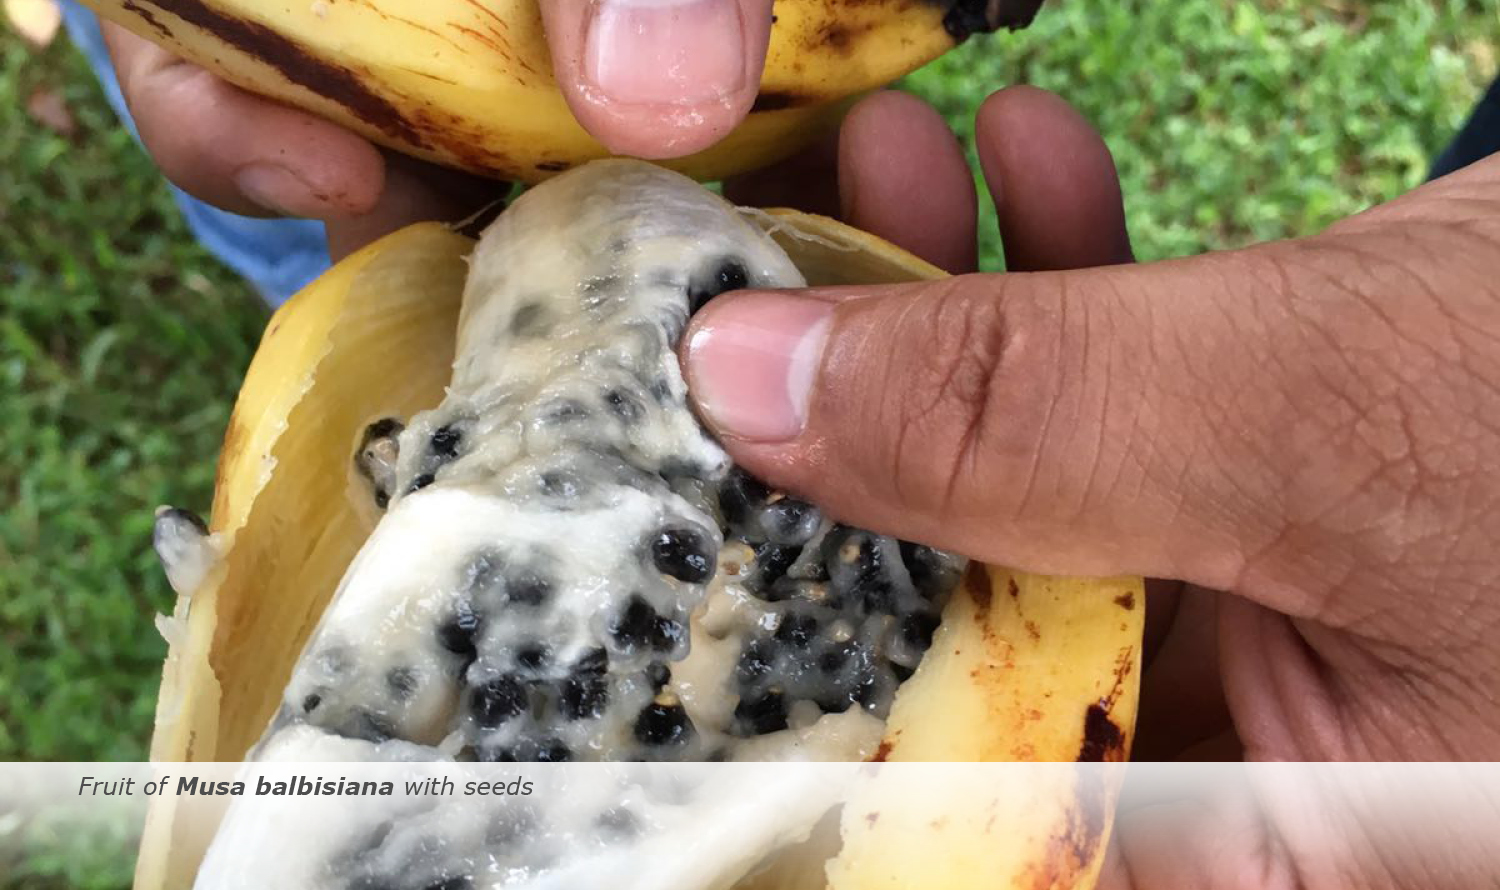 Info & Facts: Fruit of Musa balbisiana with seeds